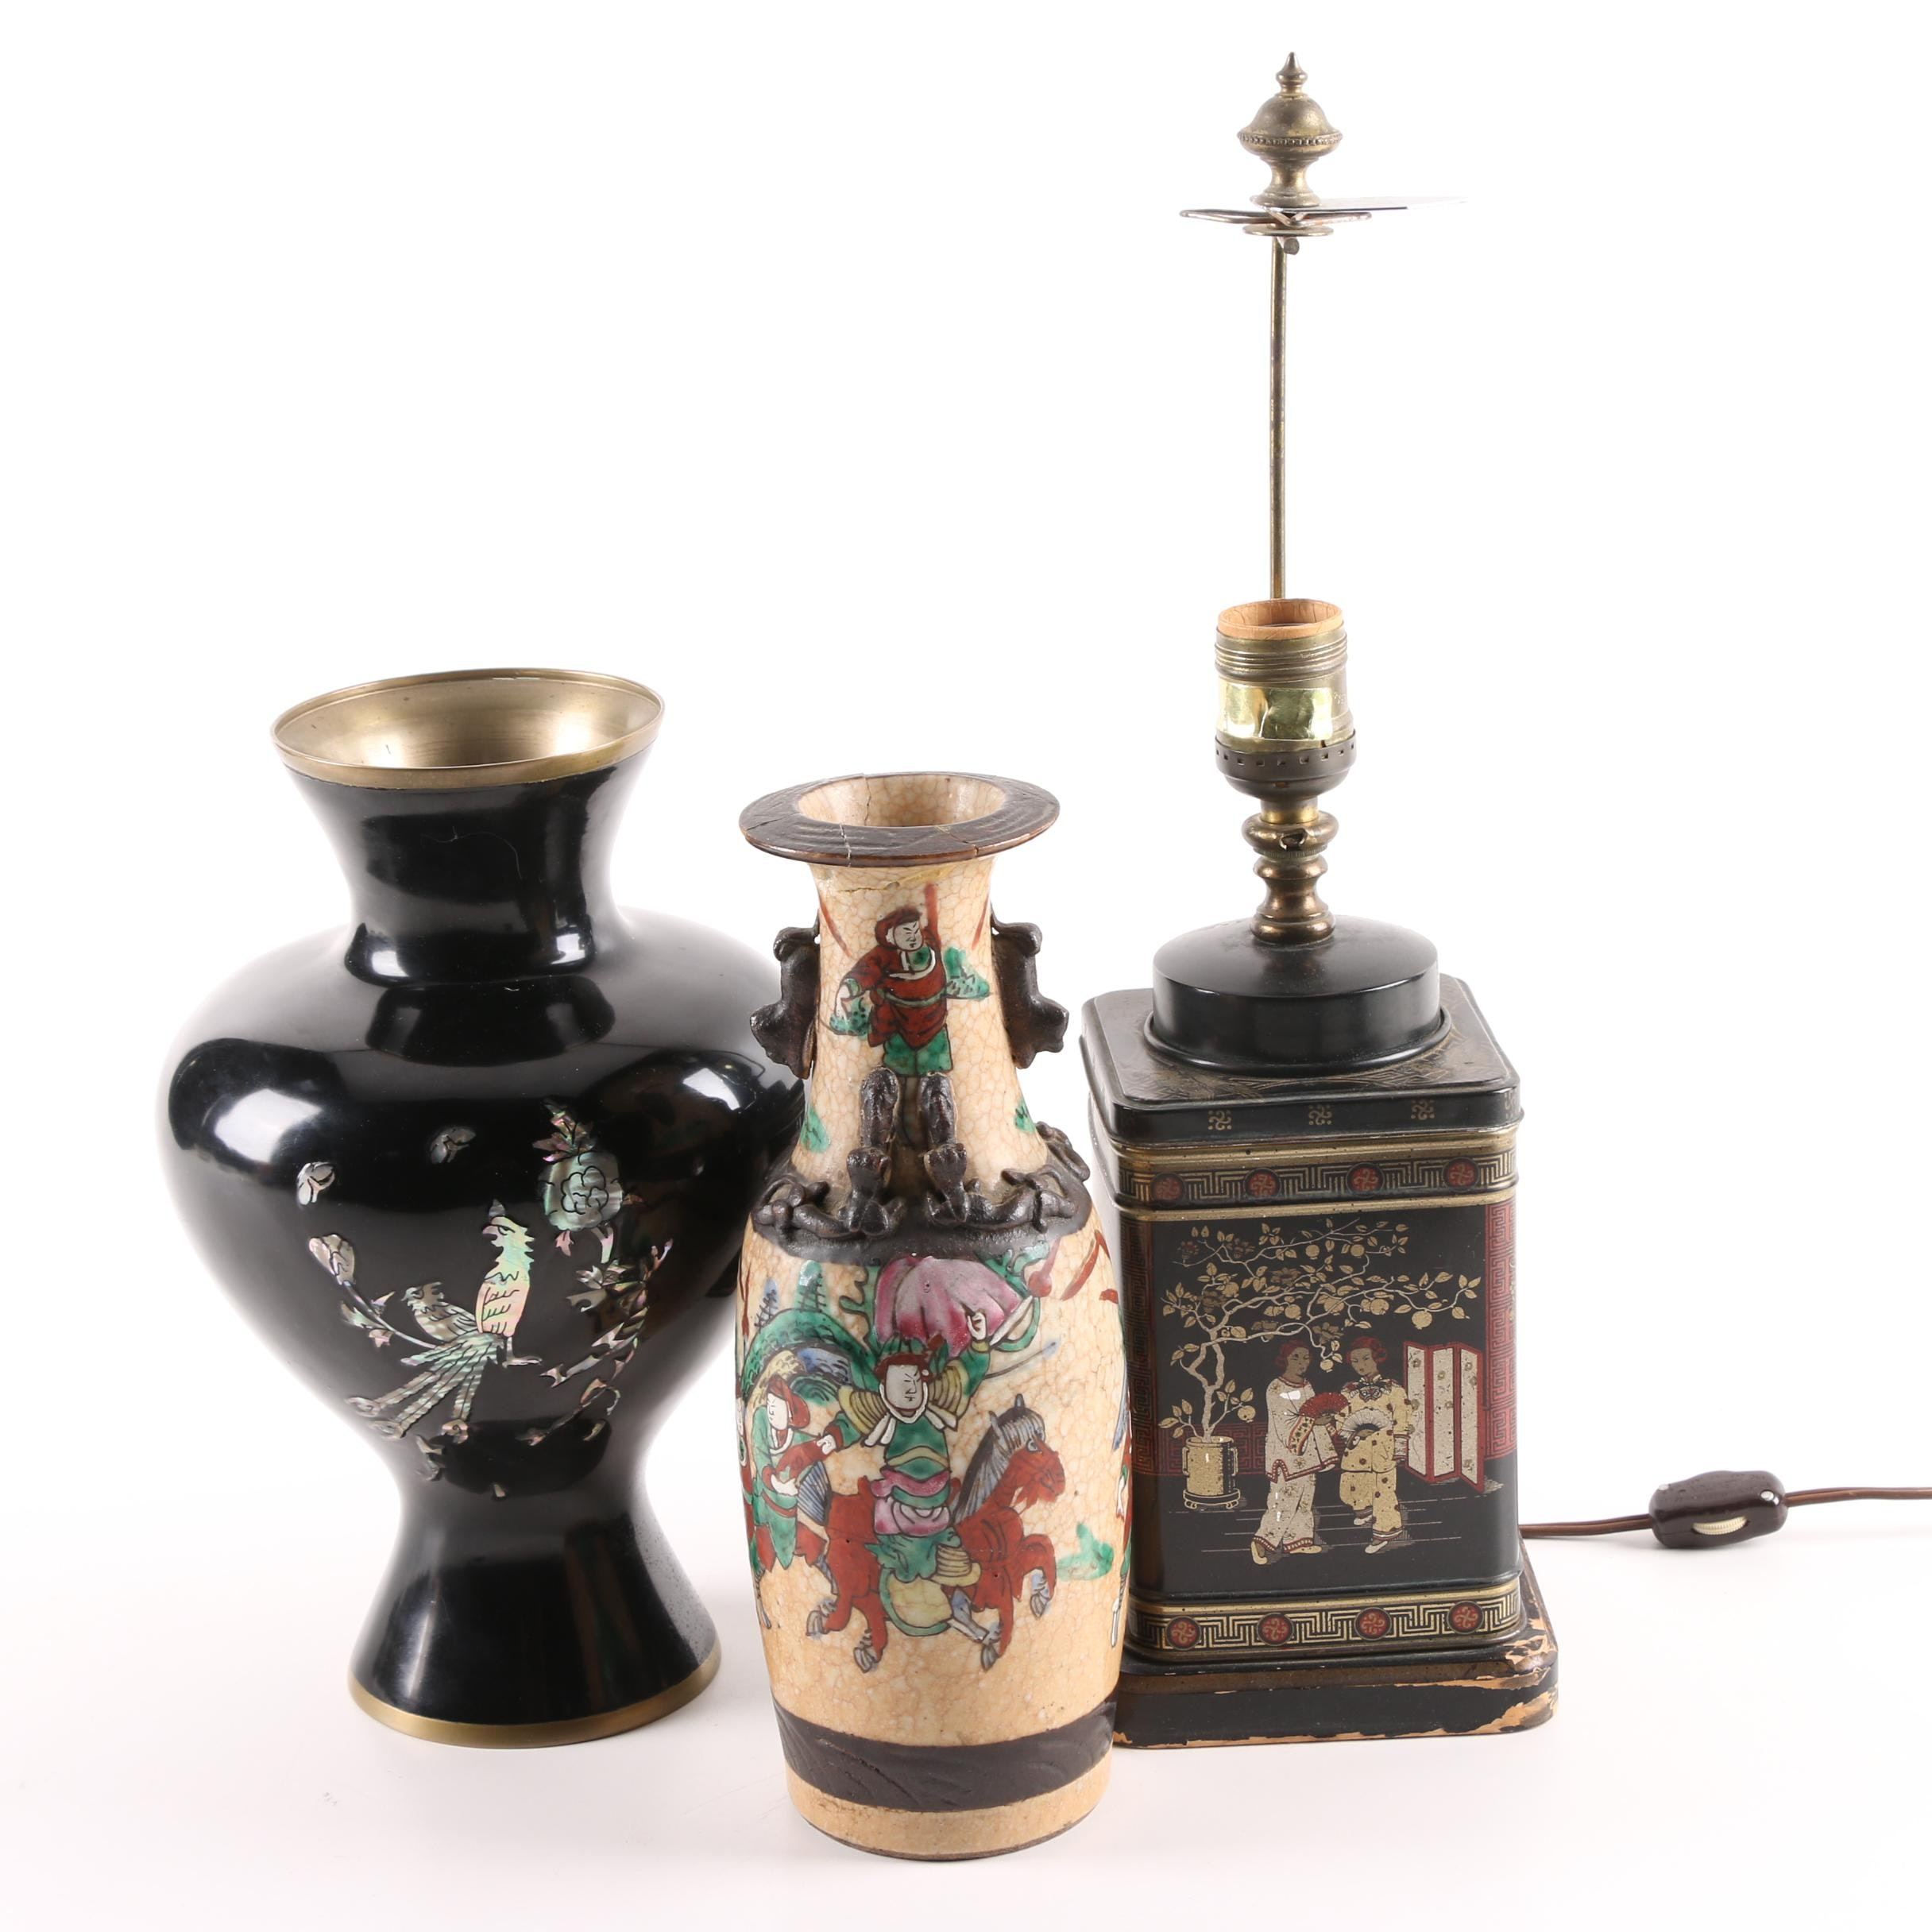 Chinoiserie Tea Tin Table Lamp and Asian Vases Including Abalone Inlay